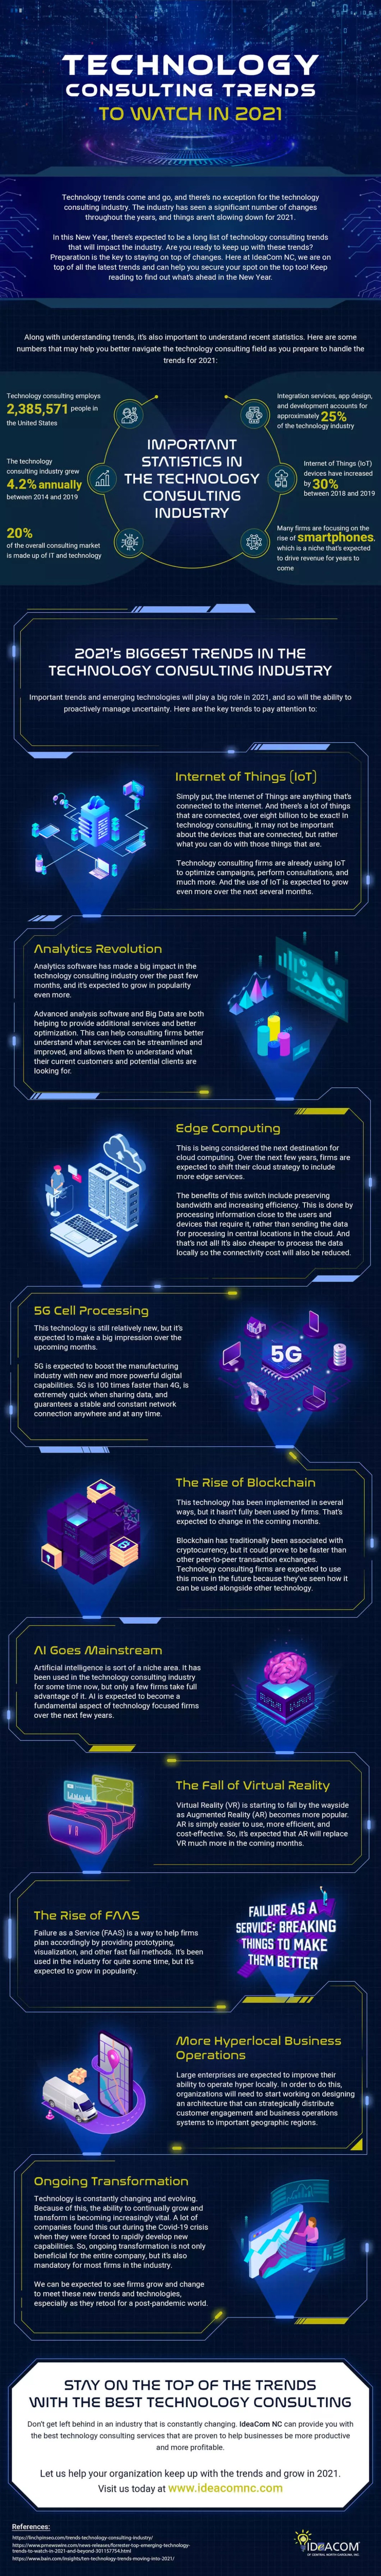 Technology Consulting Trends to Watch In 2021 - Infographic